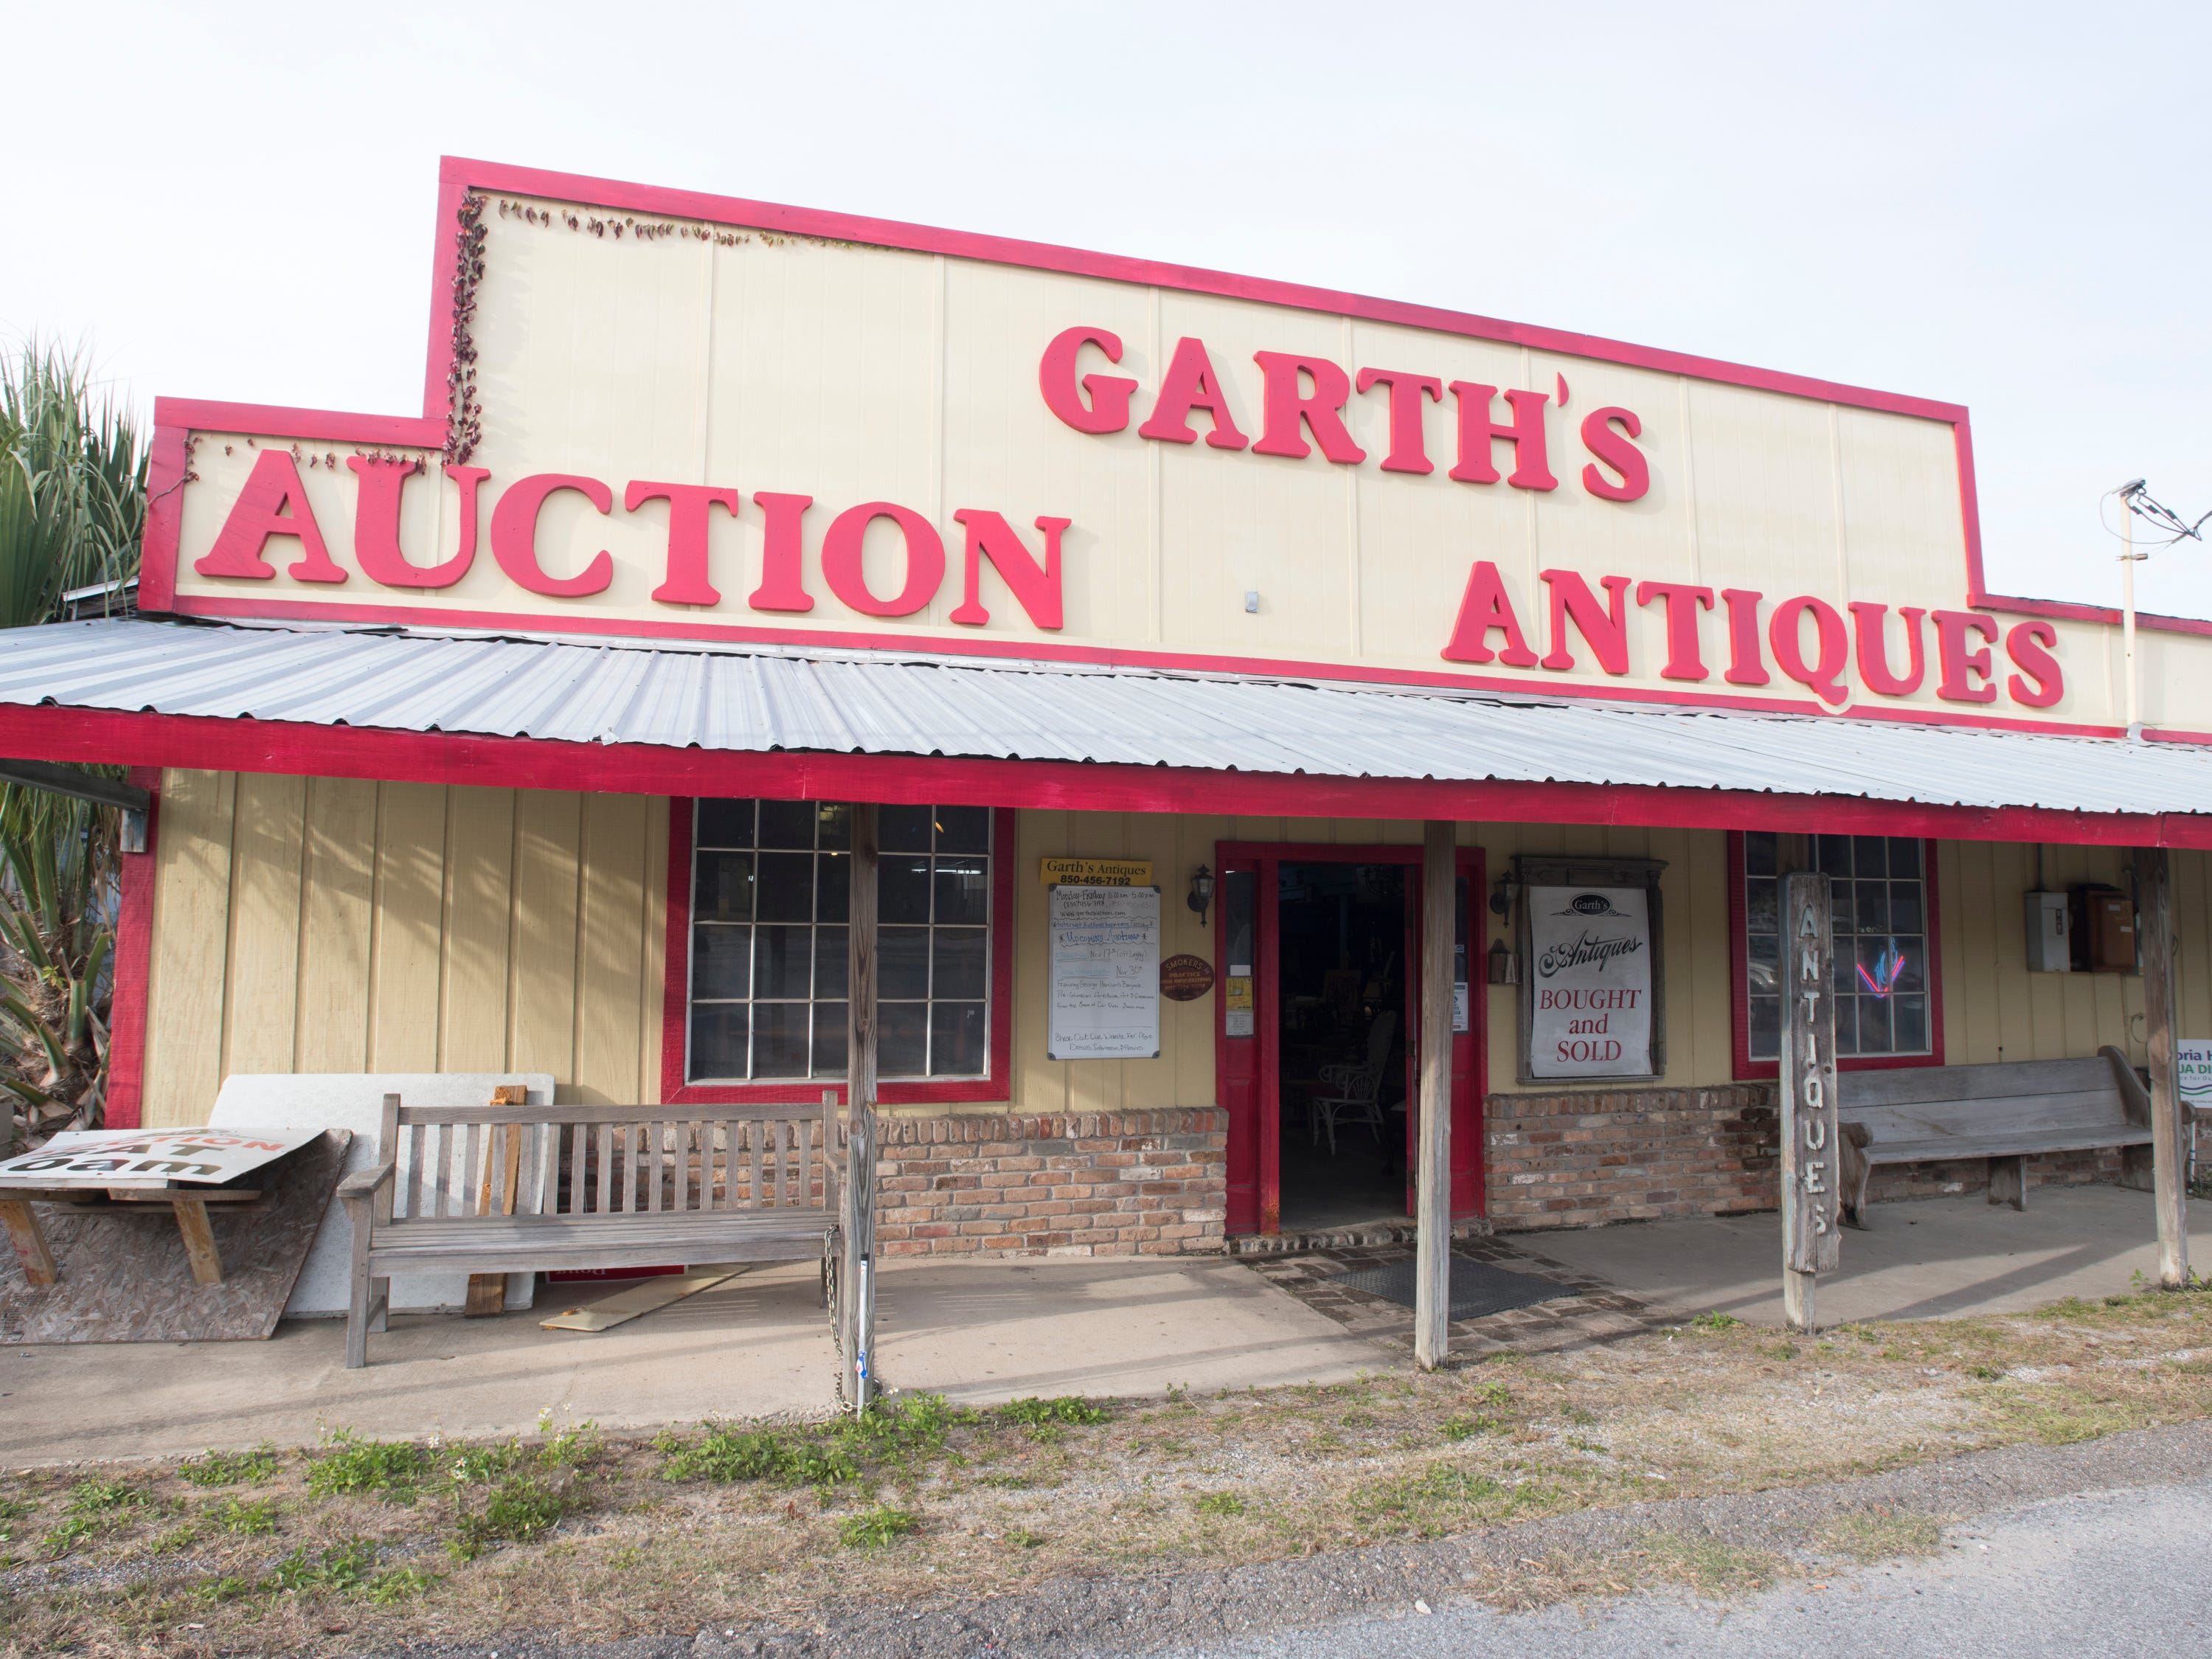 Exterior of Garth's Auction & Antiques on Navy Boulevard in Pensacola on Wednesday, November 28, 2018.  A George Harrison banjo, Pre-Columbian art and other items will be up for sale during their auction on Friday, November 30th.